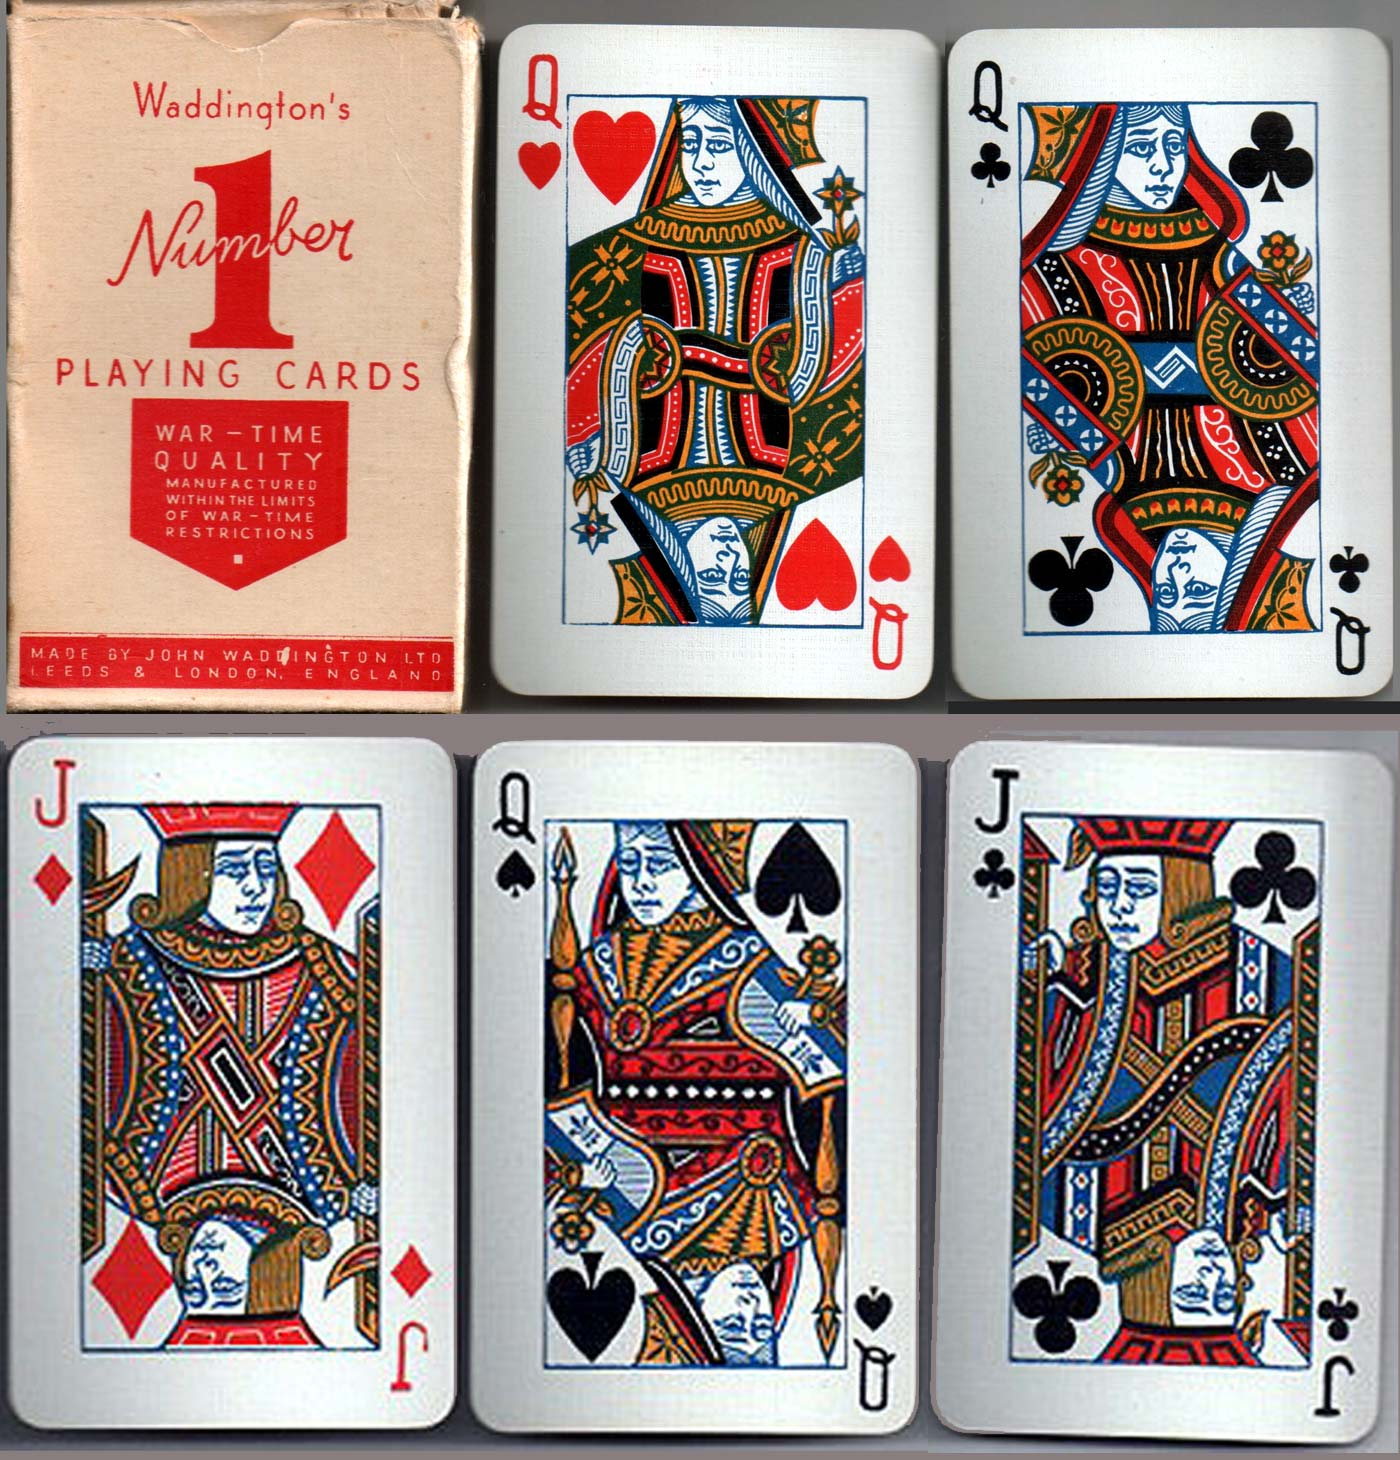 Number 1 playing cards manufactured during war-time rationing